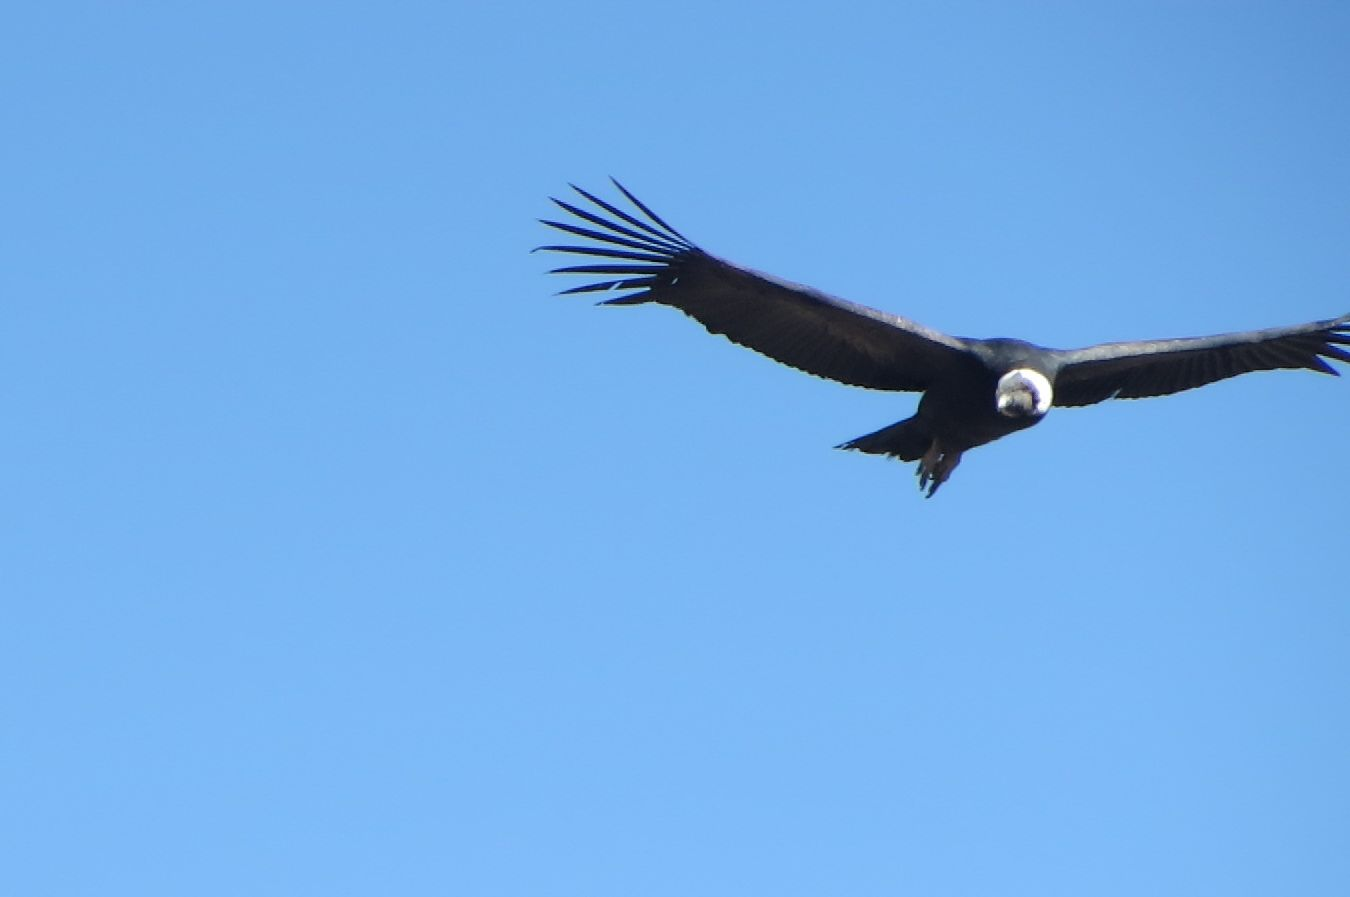 A condor flies by as visitors try to take its picture. I did OK, I guess.